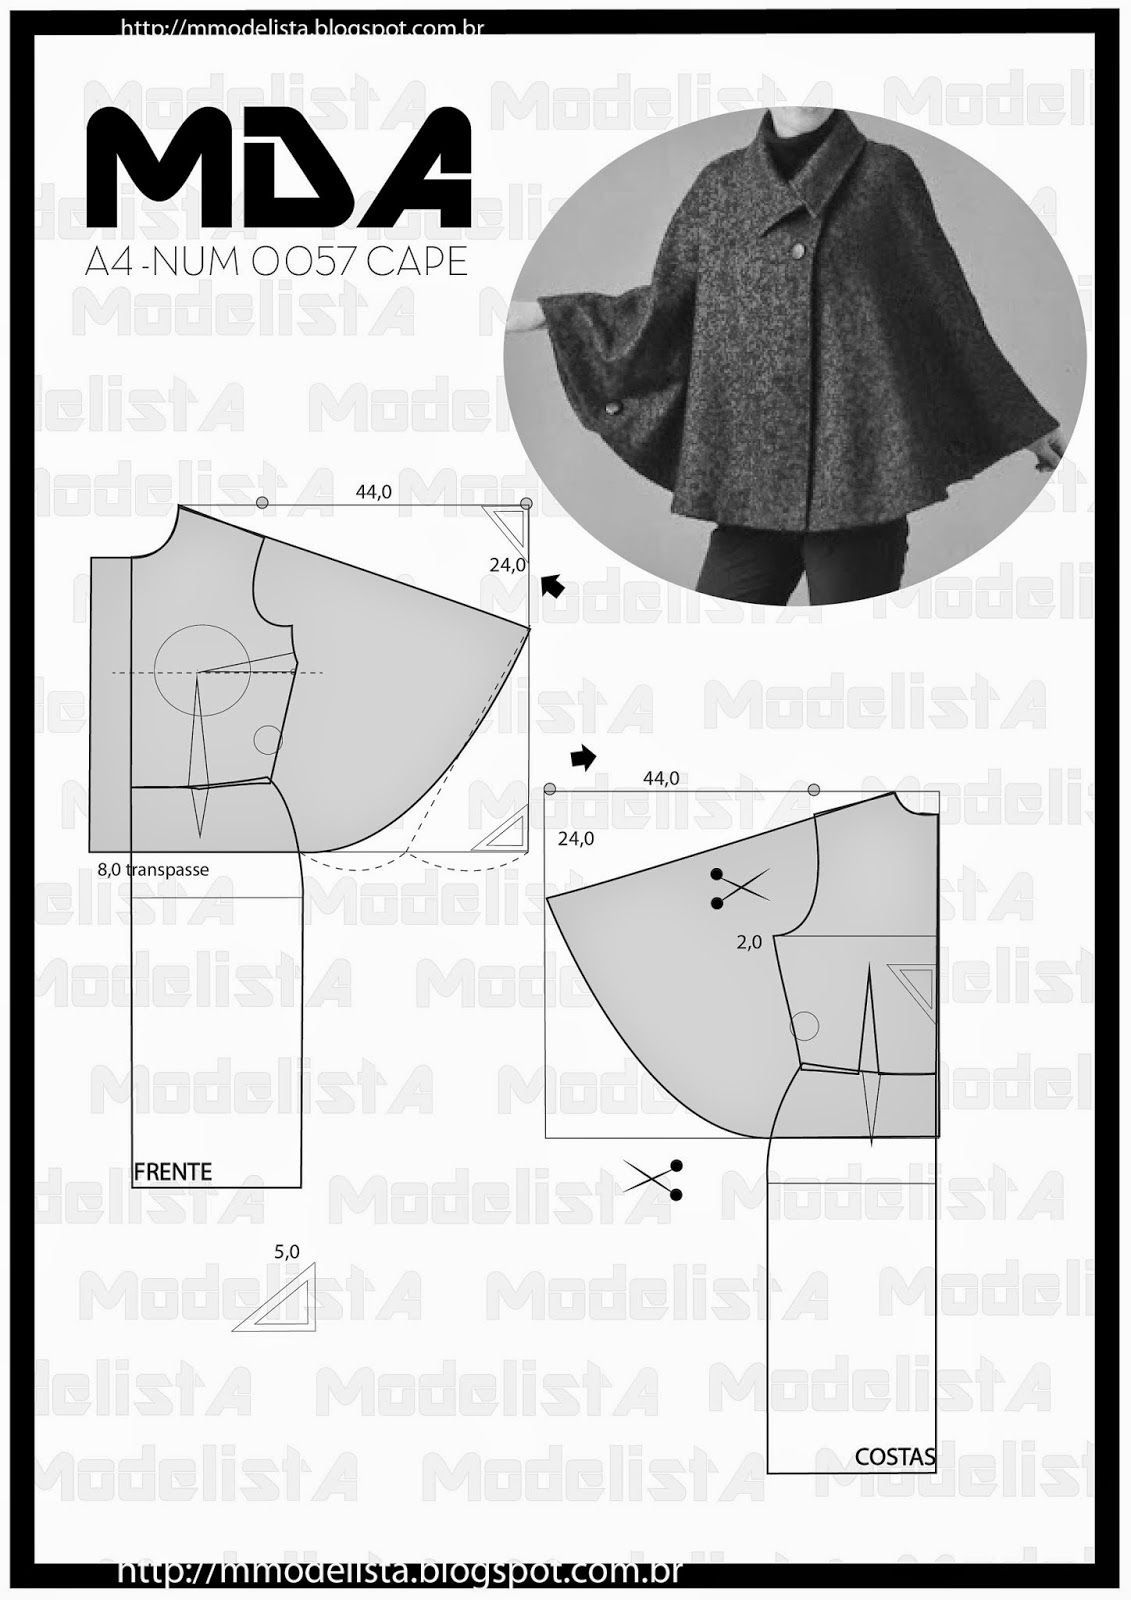 Basic dress & cape patterns. Modification possibilities are infinite ...